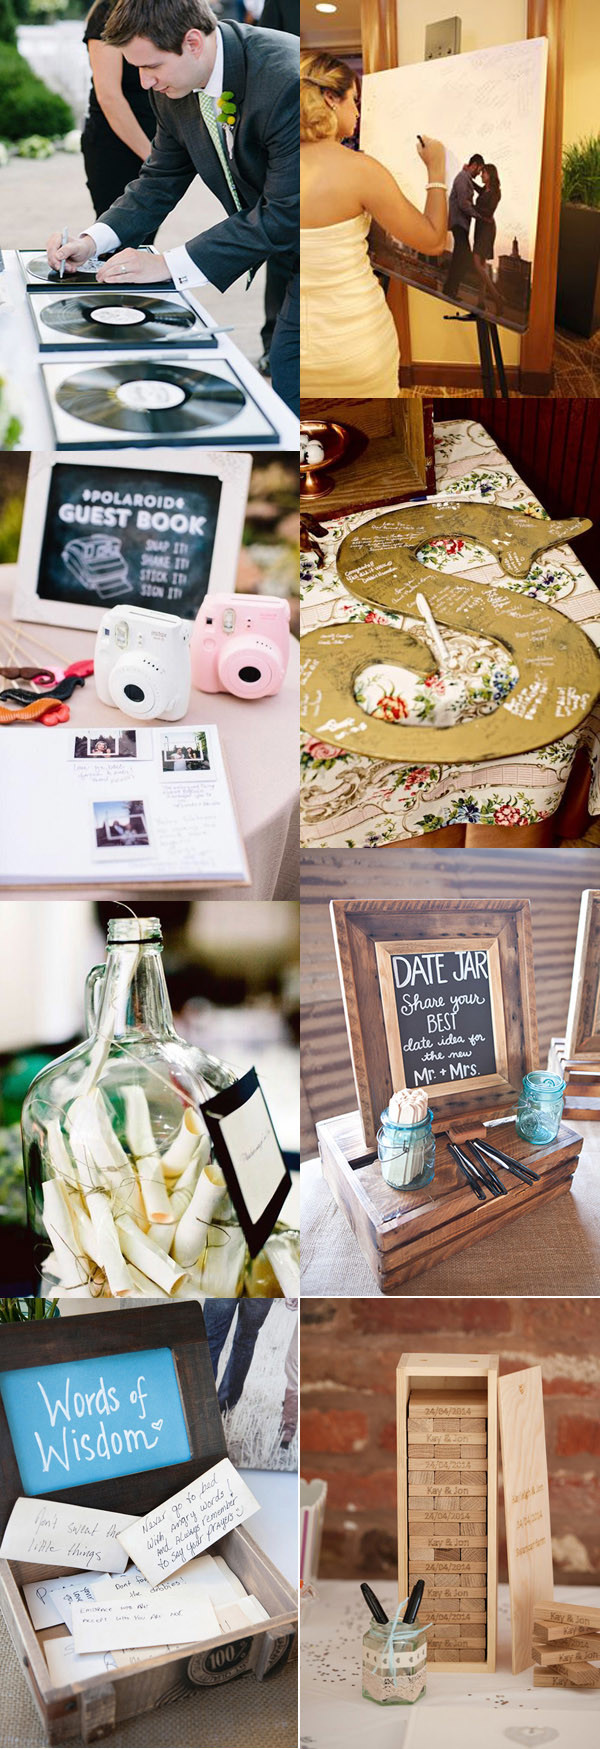 creative wedding guest book ideas for your big day